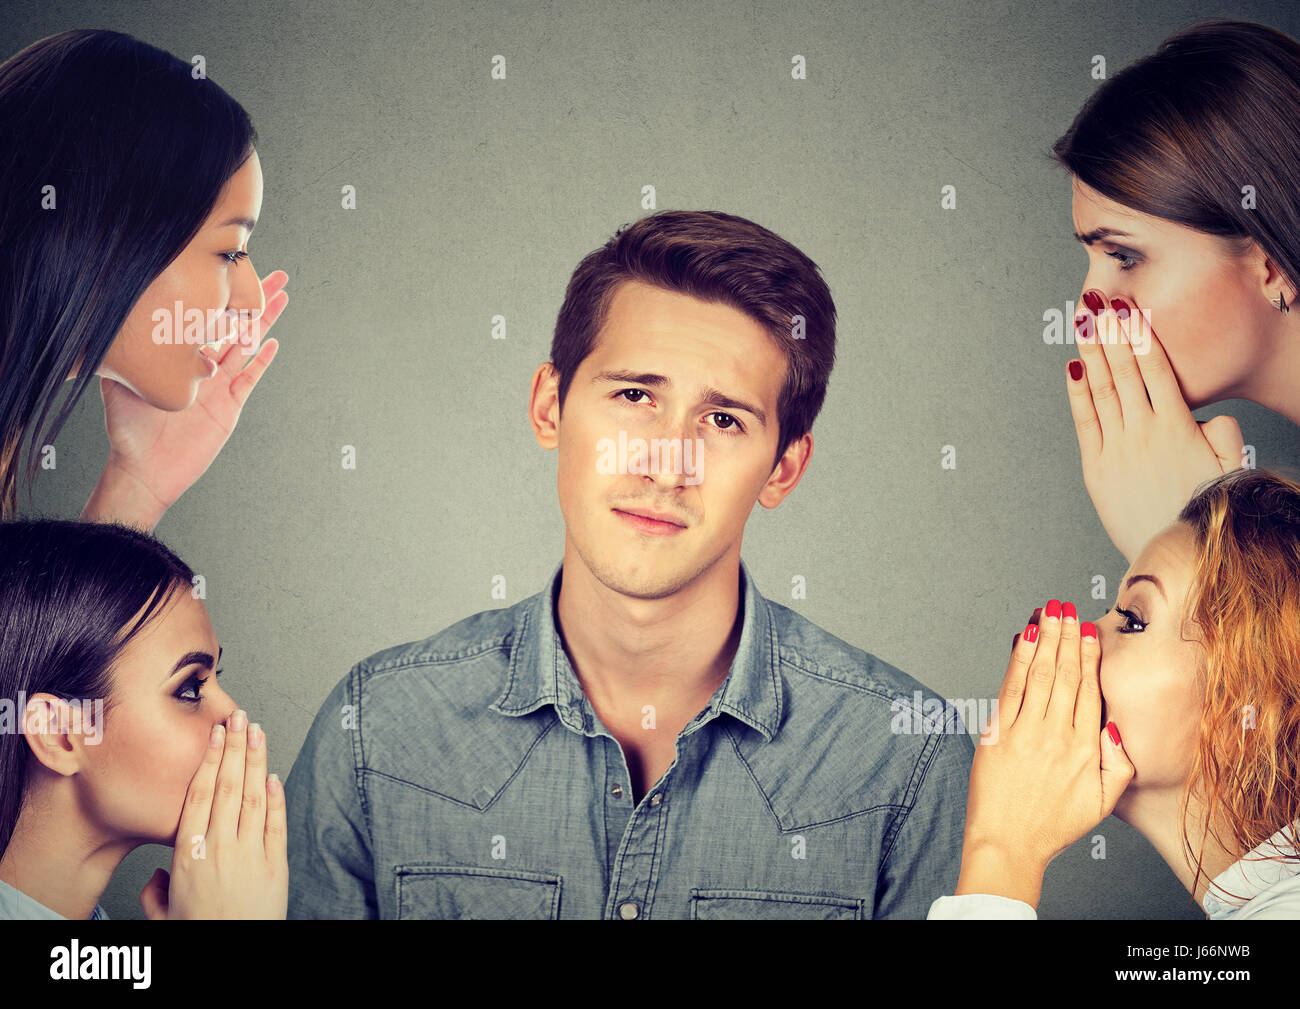 Four women whispering a secret latest gossip to a bored annoyed man - Stock Image